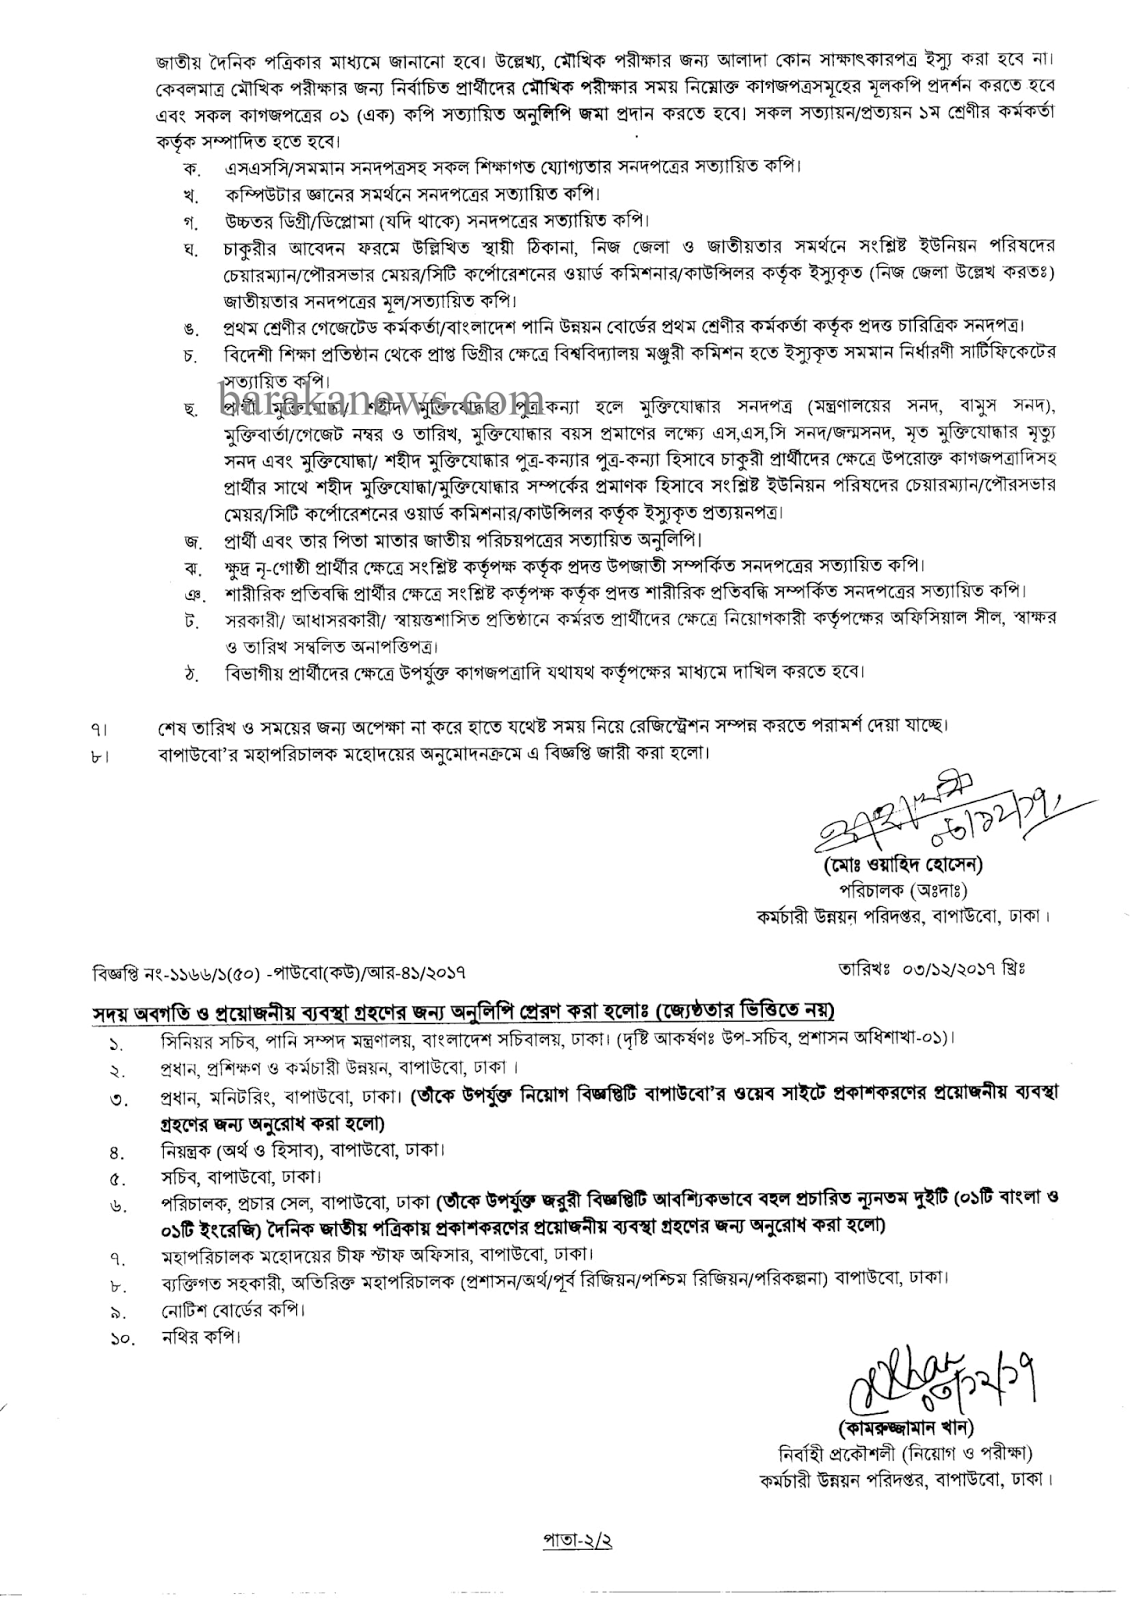 Government Jobs at Water Development Board in Bangladesh ...